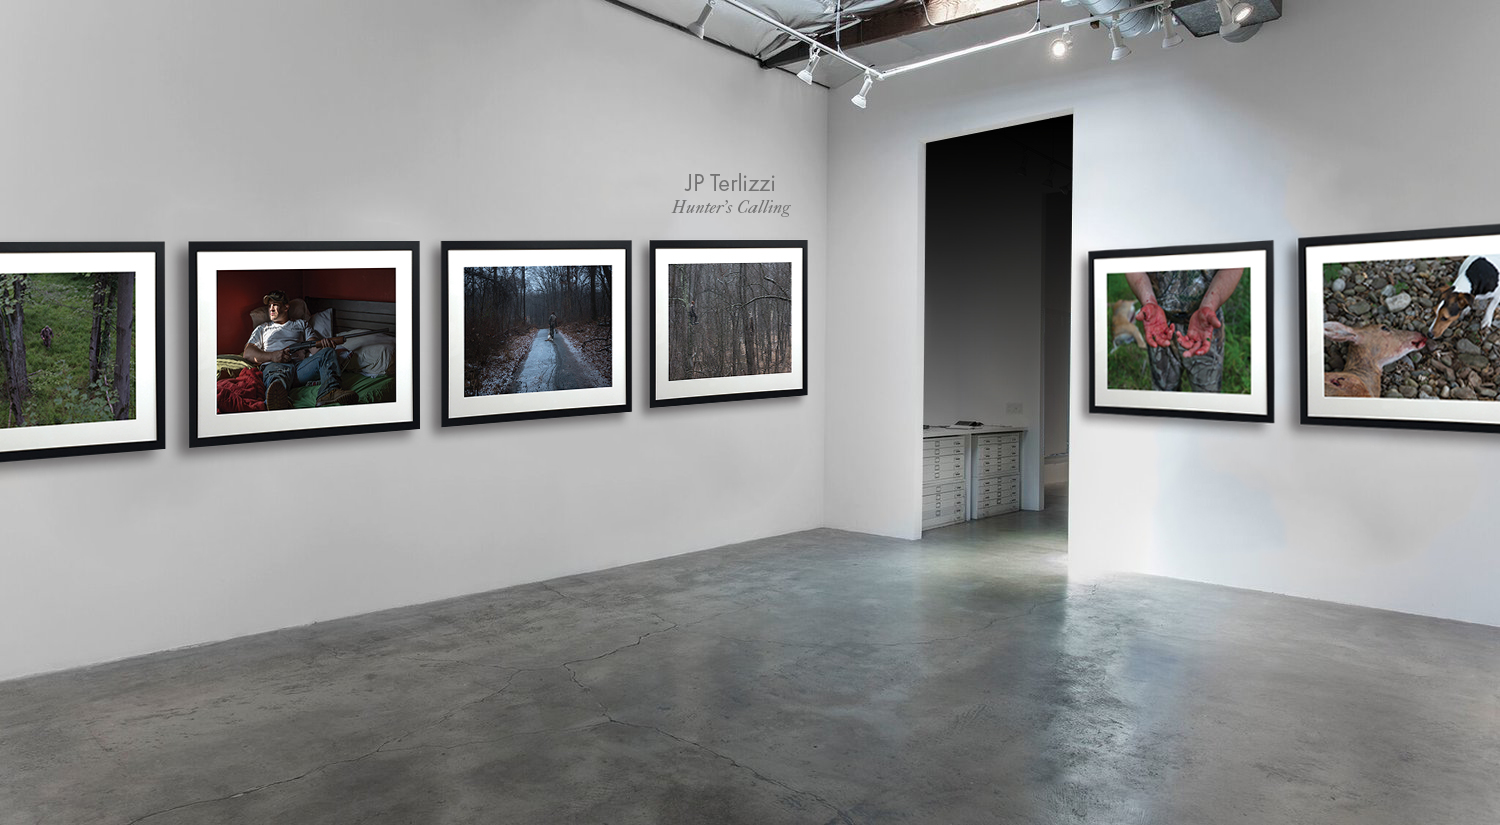 Exhibition Details:  Chromogenic prints, matted and framed in black wood 38 x 28 inches